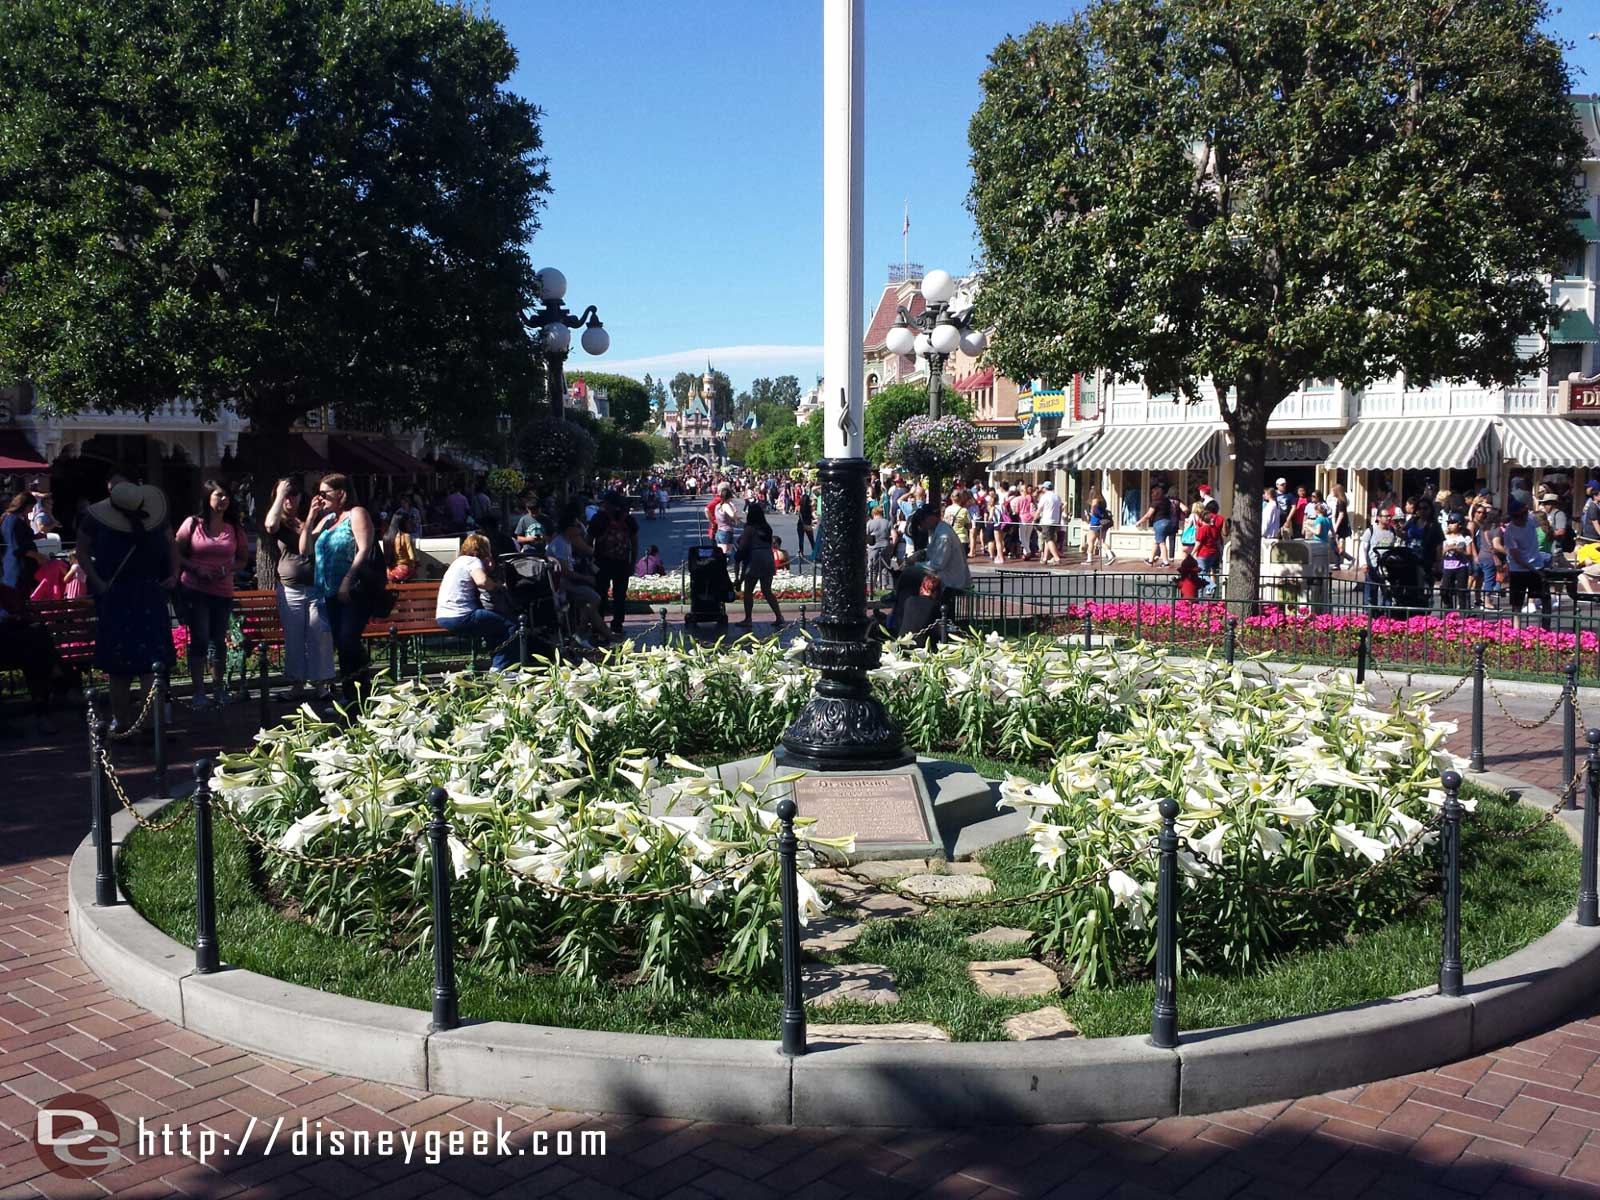 #Disneyland Town Square flag pole/dedication plaque planter